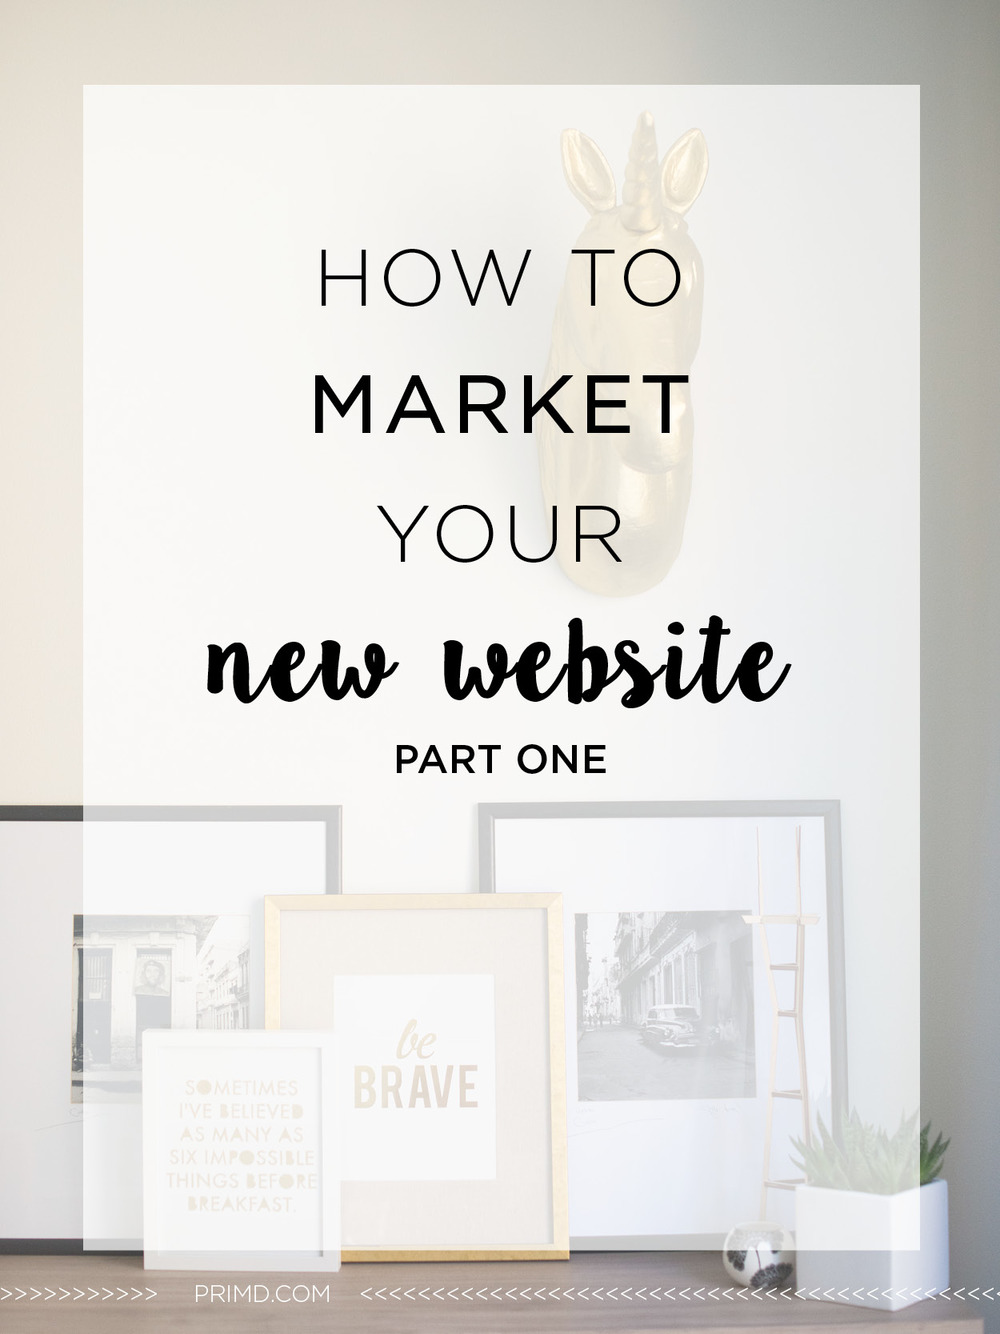 Blog 43 - How to Market Your New Website.jpg - Prim'd Blog